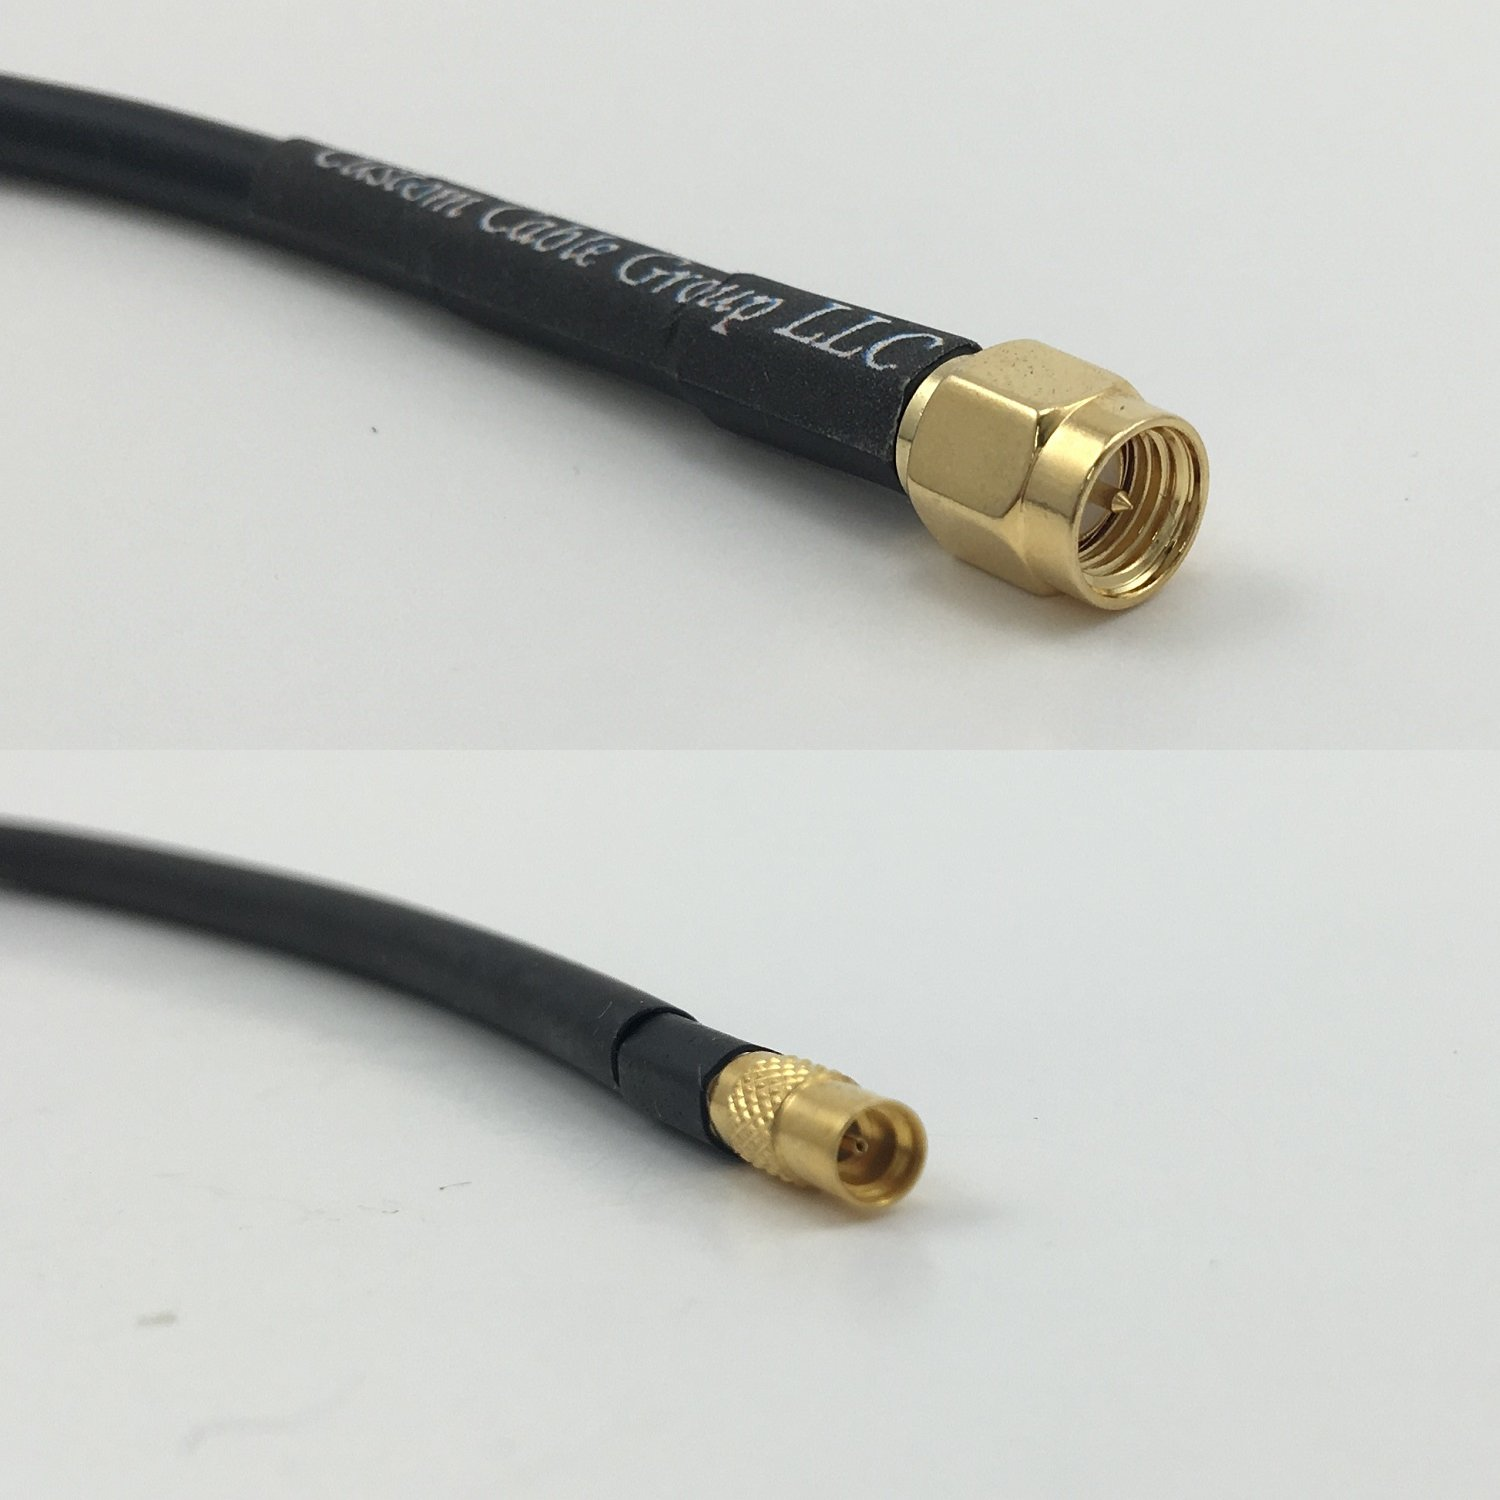 6 inch RG188 SMA MALE to MMCX FEMALE Pigtail Jumper RF coaxial cable 50ohm High Quality Quick USA Shipping